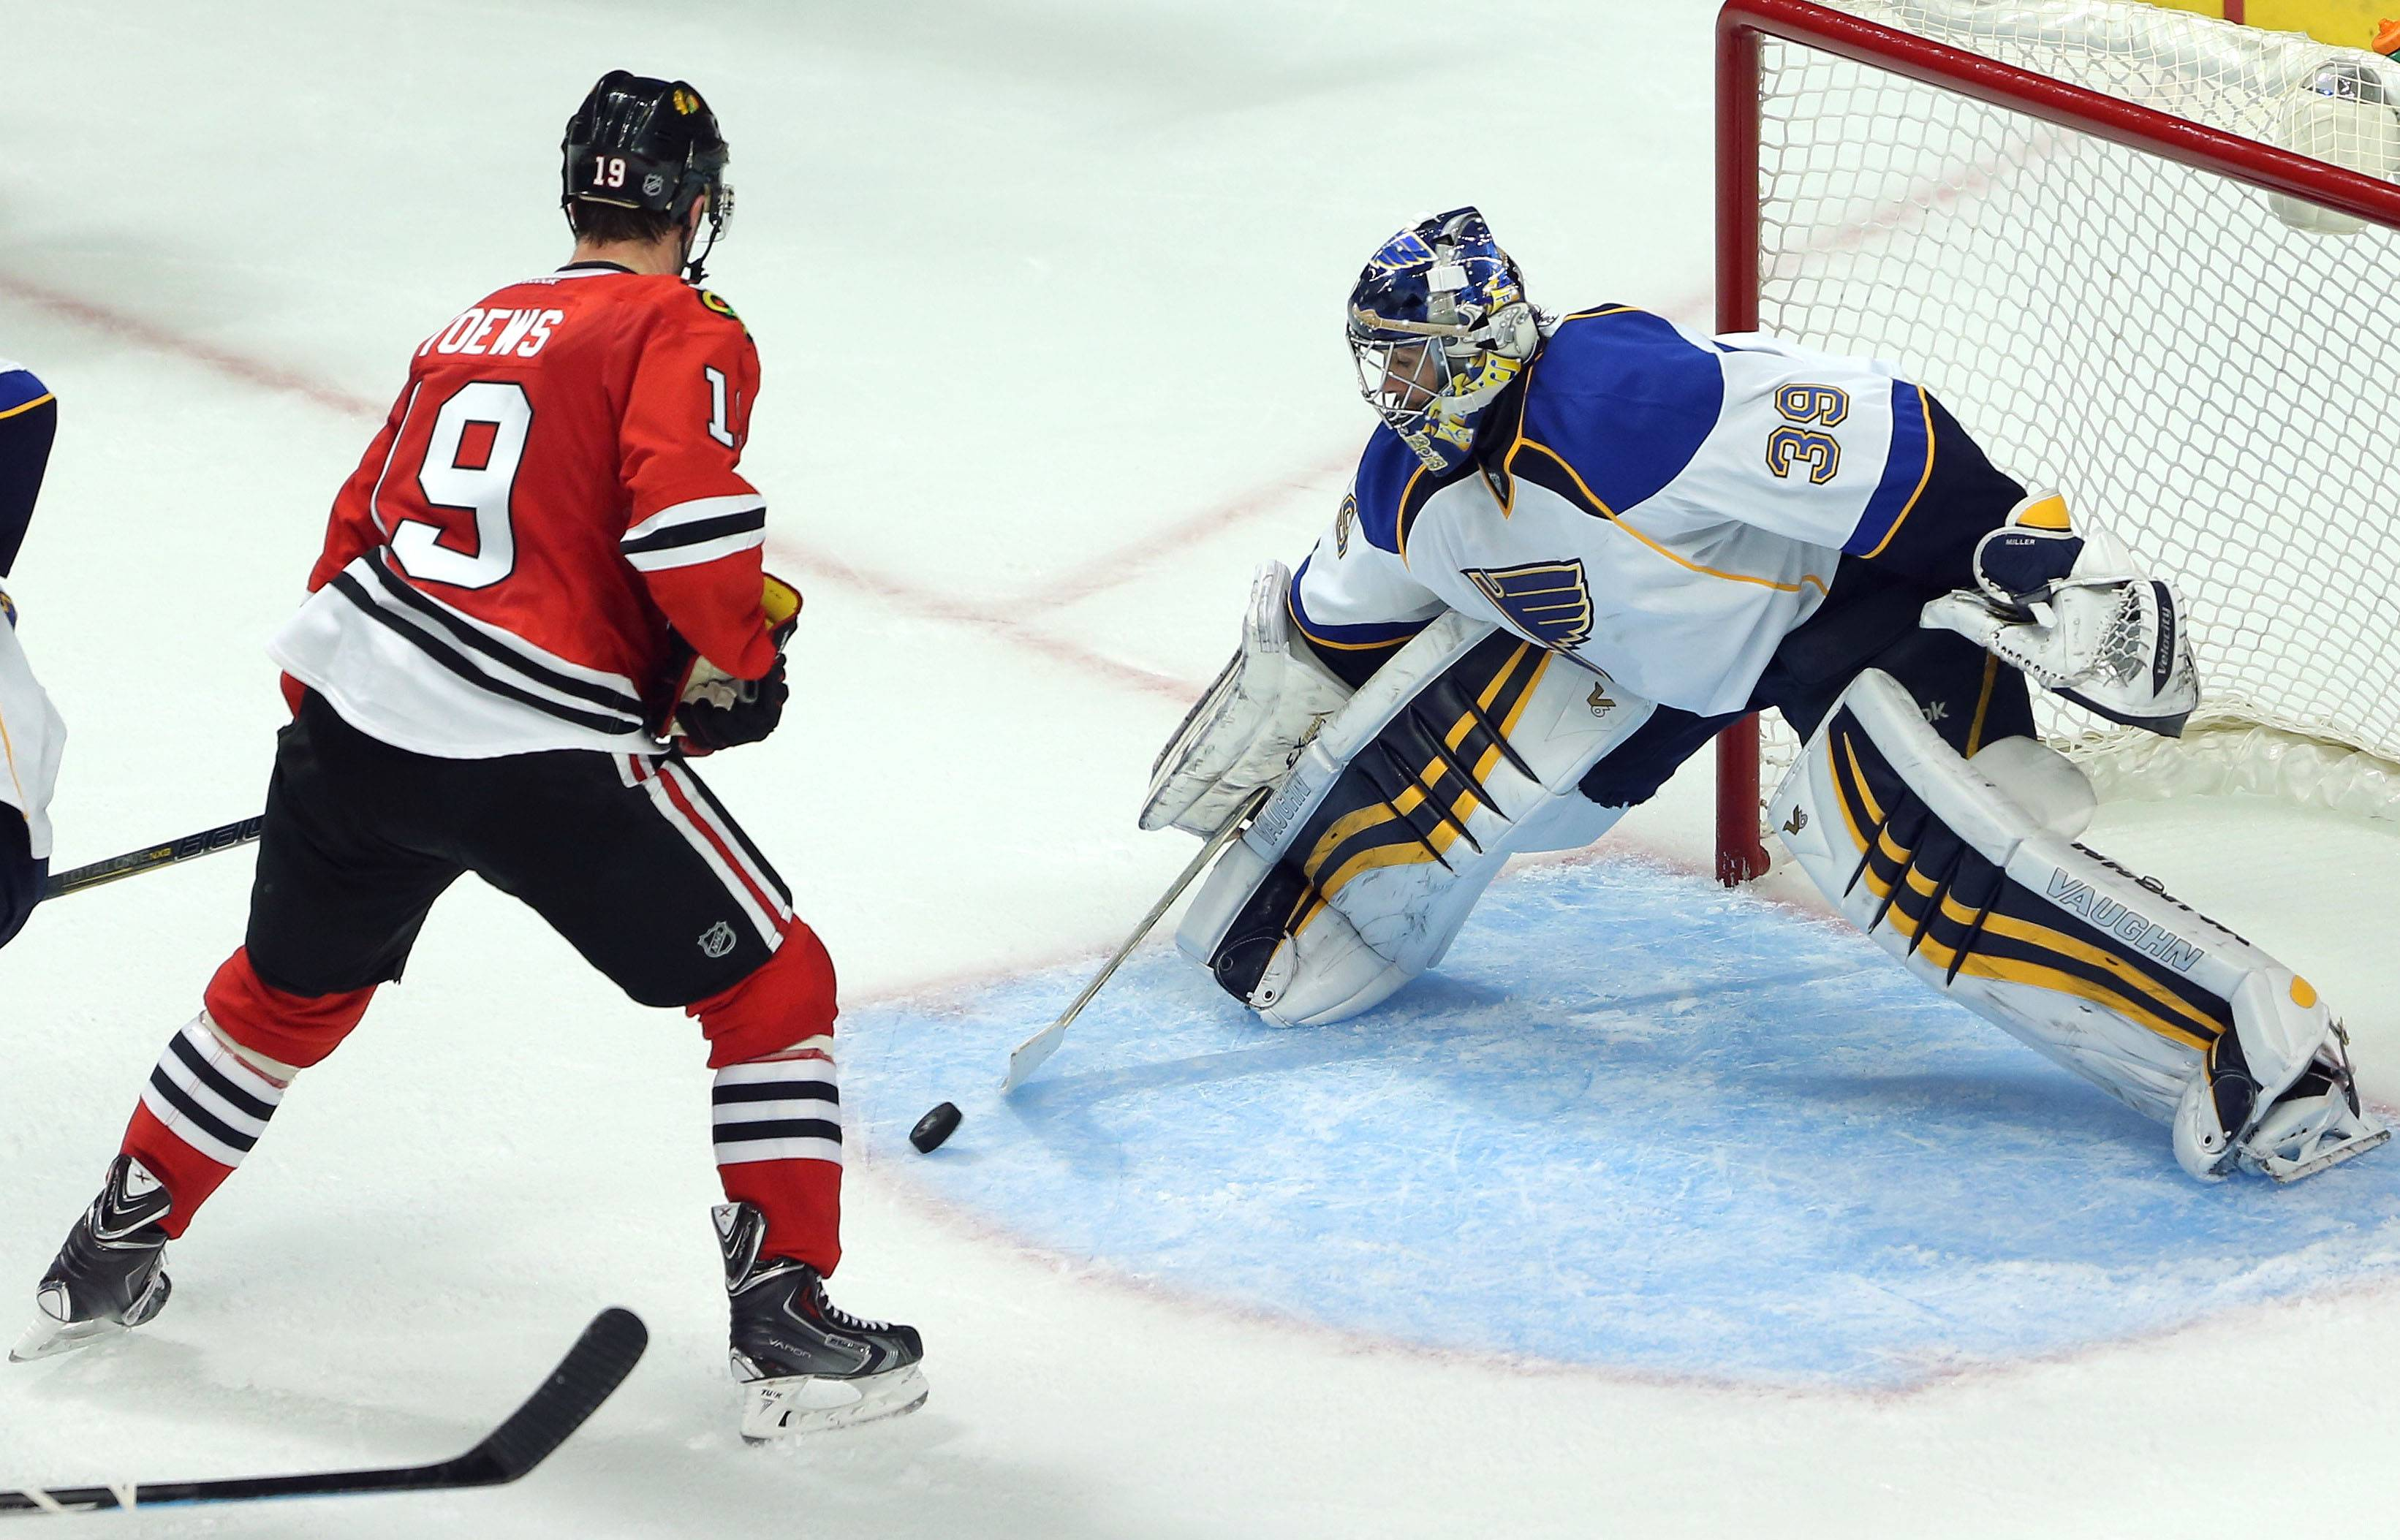 Chicago Blackhawks center Jonathan Toews drives on St. Louis Blues goalie Ryan Miller.